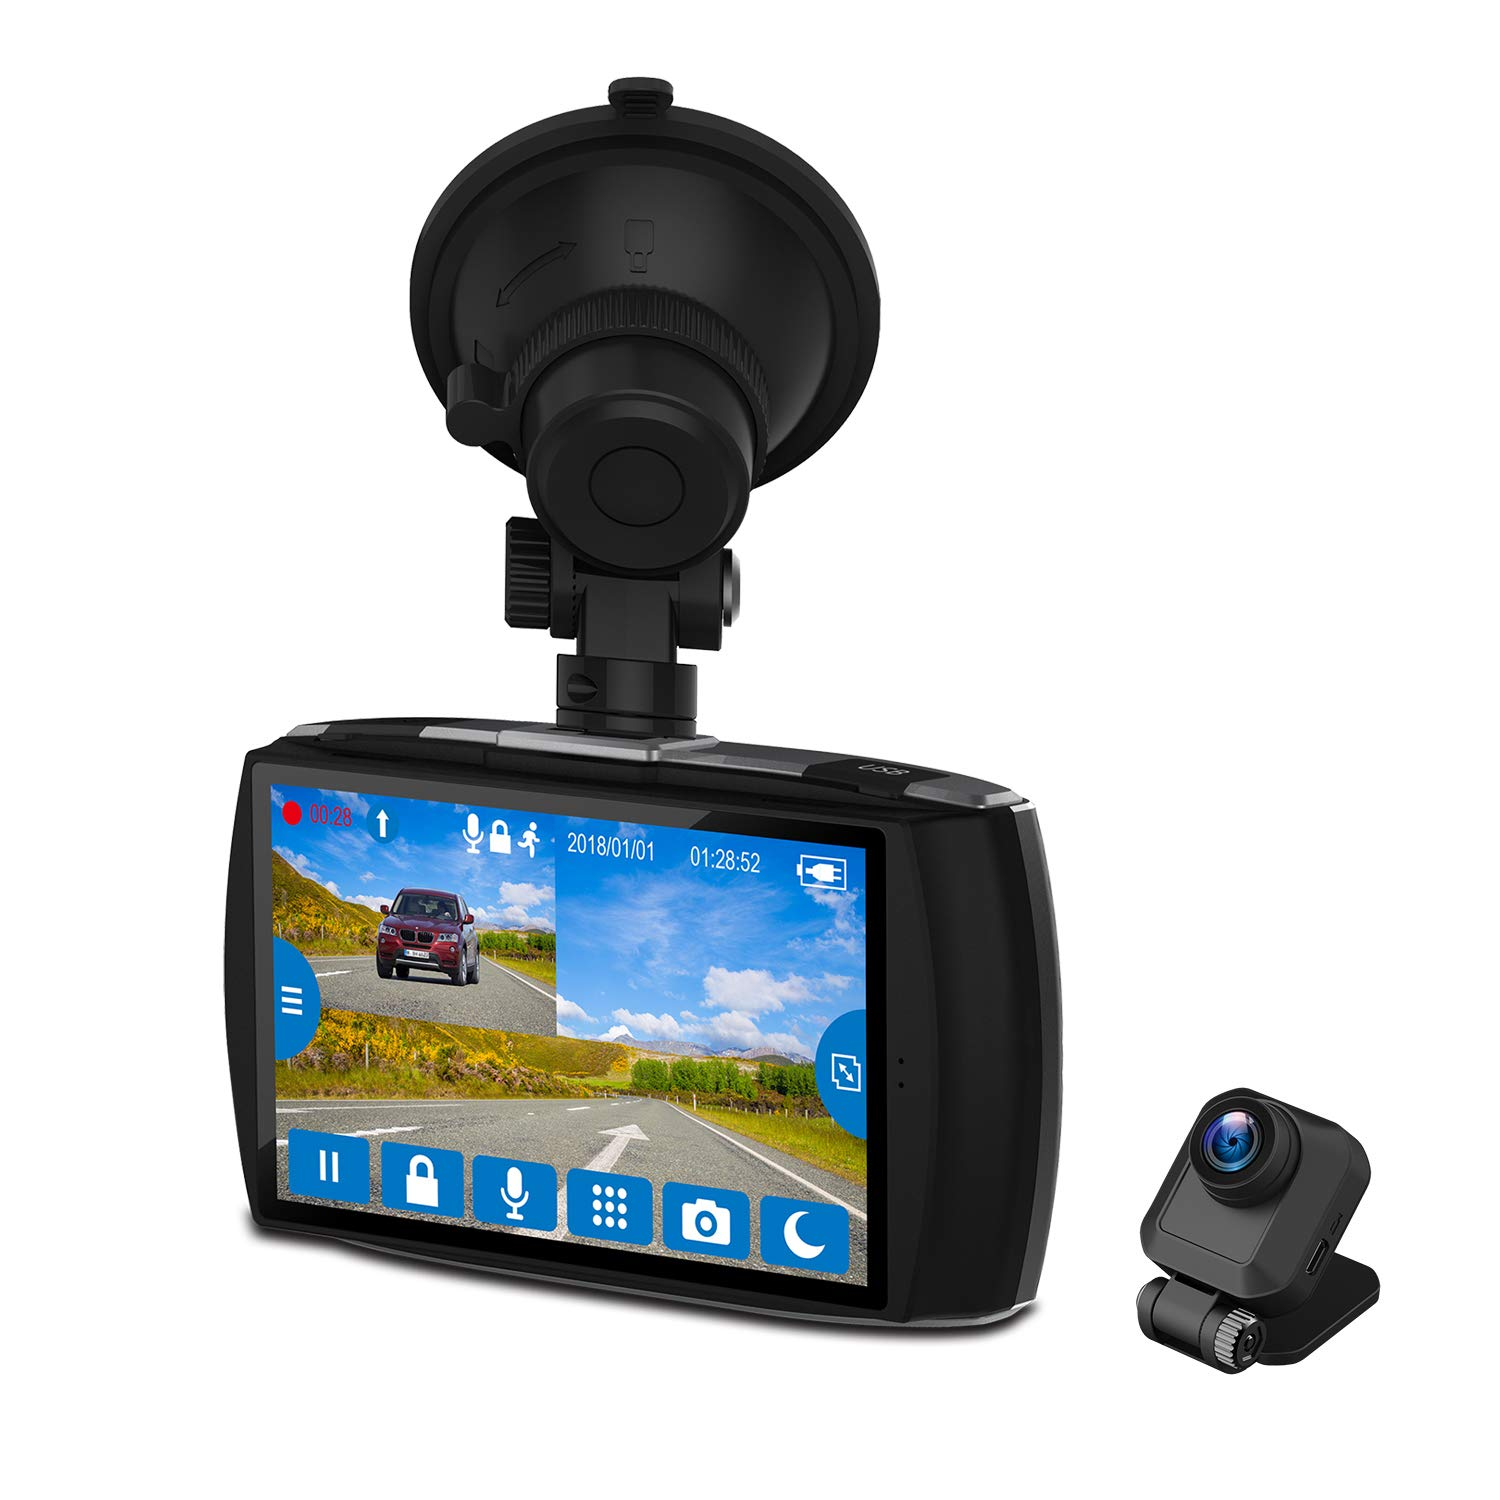 "Z-EDGE Dash Cam Front and Rear 4.0"" Touch Screen Dual Dash Cam FHD 1080P with Night Mode, 32GB Card Included,155 Degree Wide Angle, WDR, G-Sensor, Loop Recording"